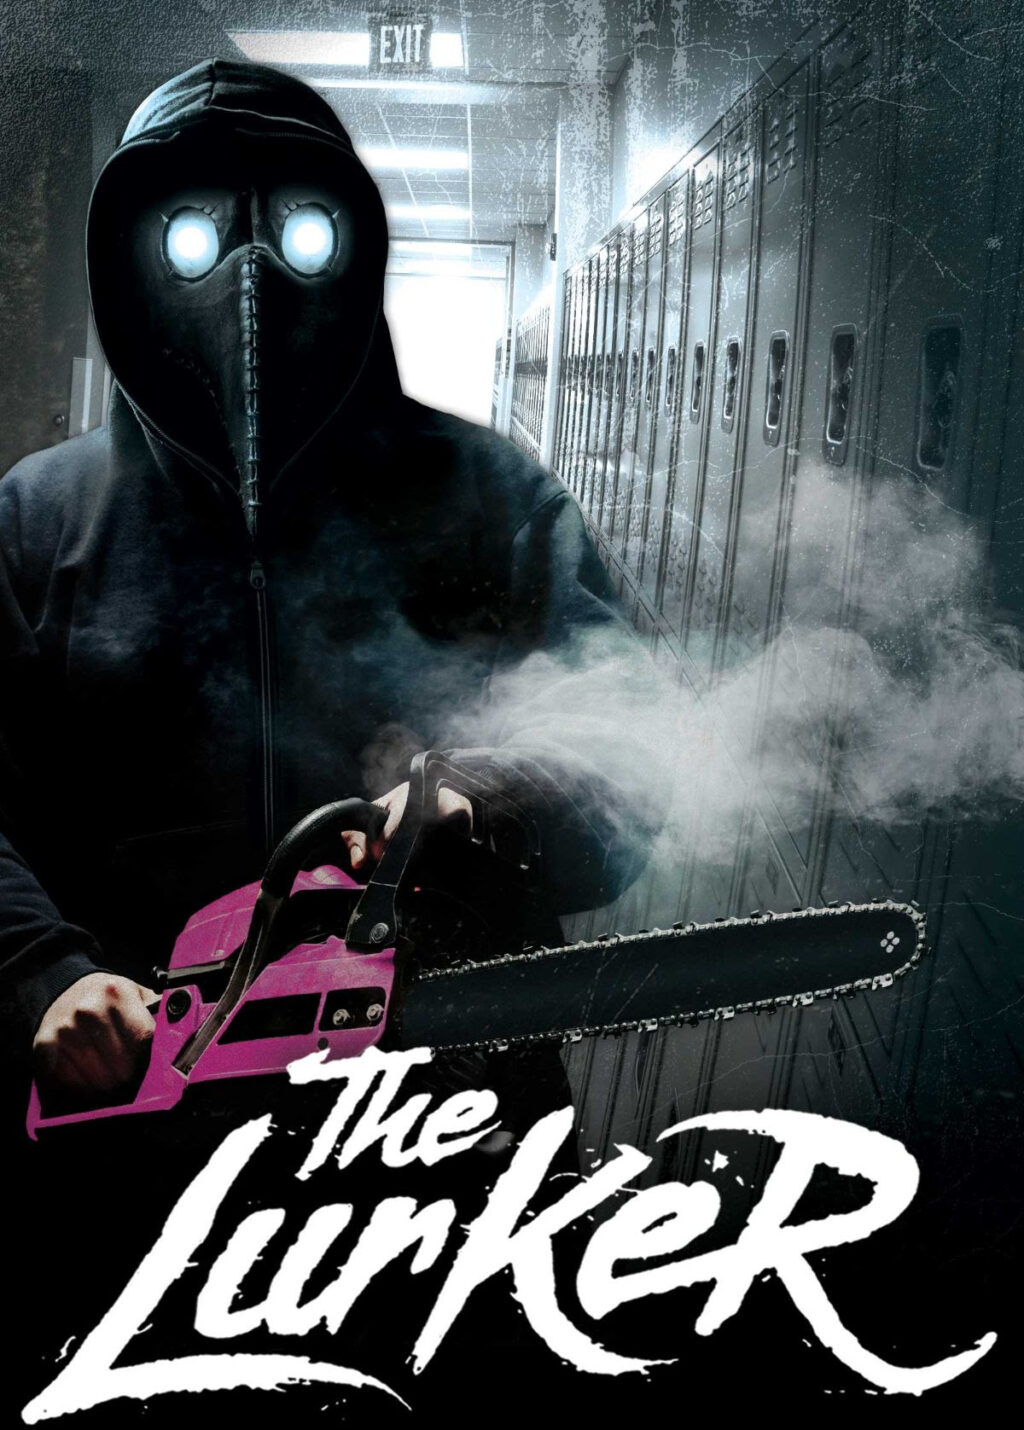 The Lurker Poster 1024x1430 - Trailer: Scout Taylor-Compton Faces THE LURKER 4/14